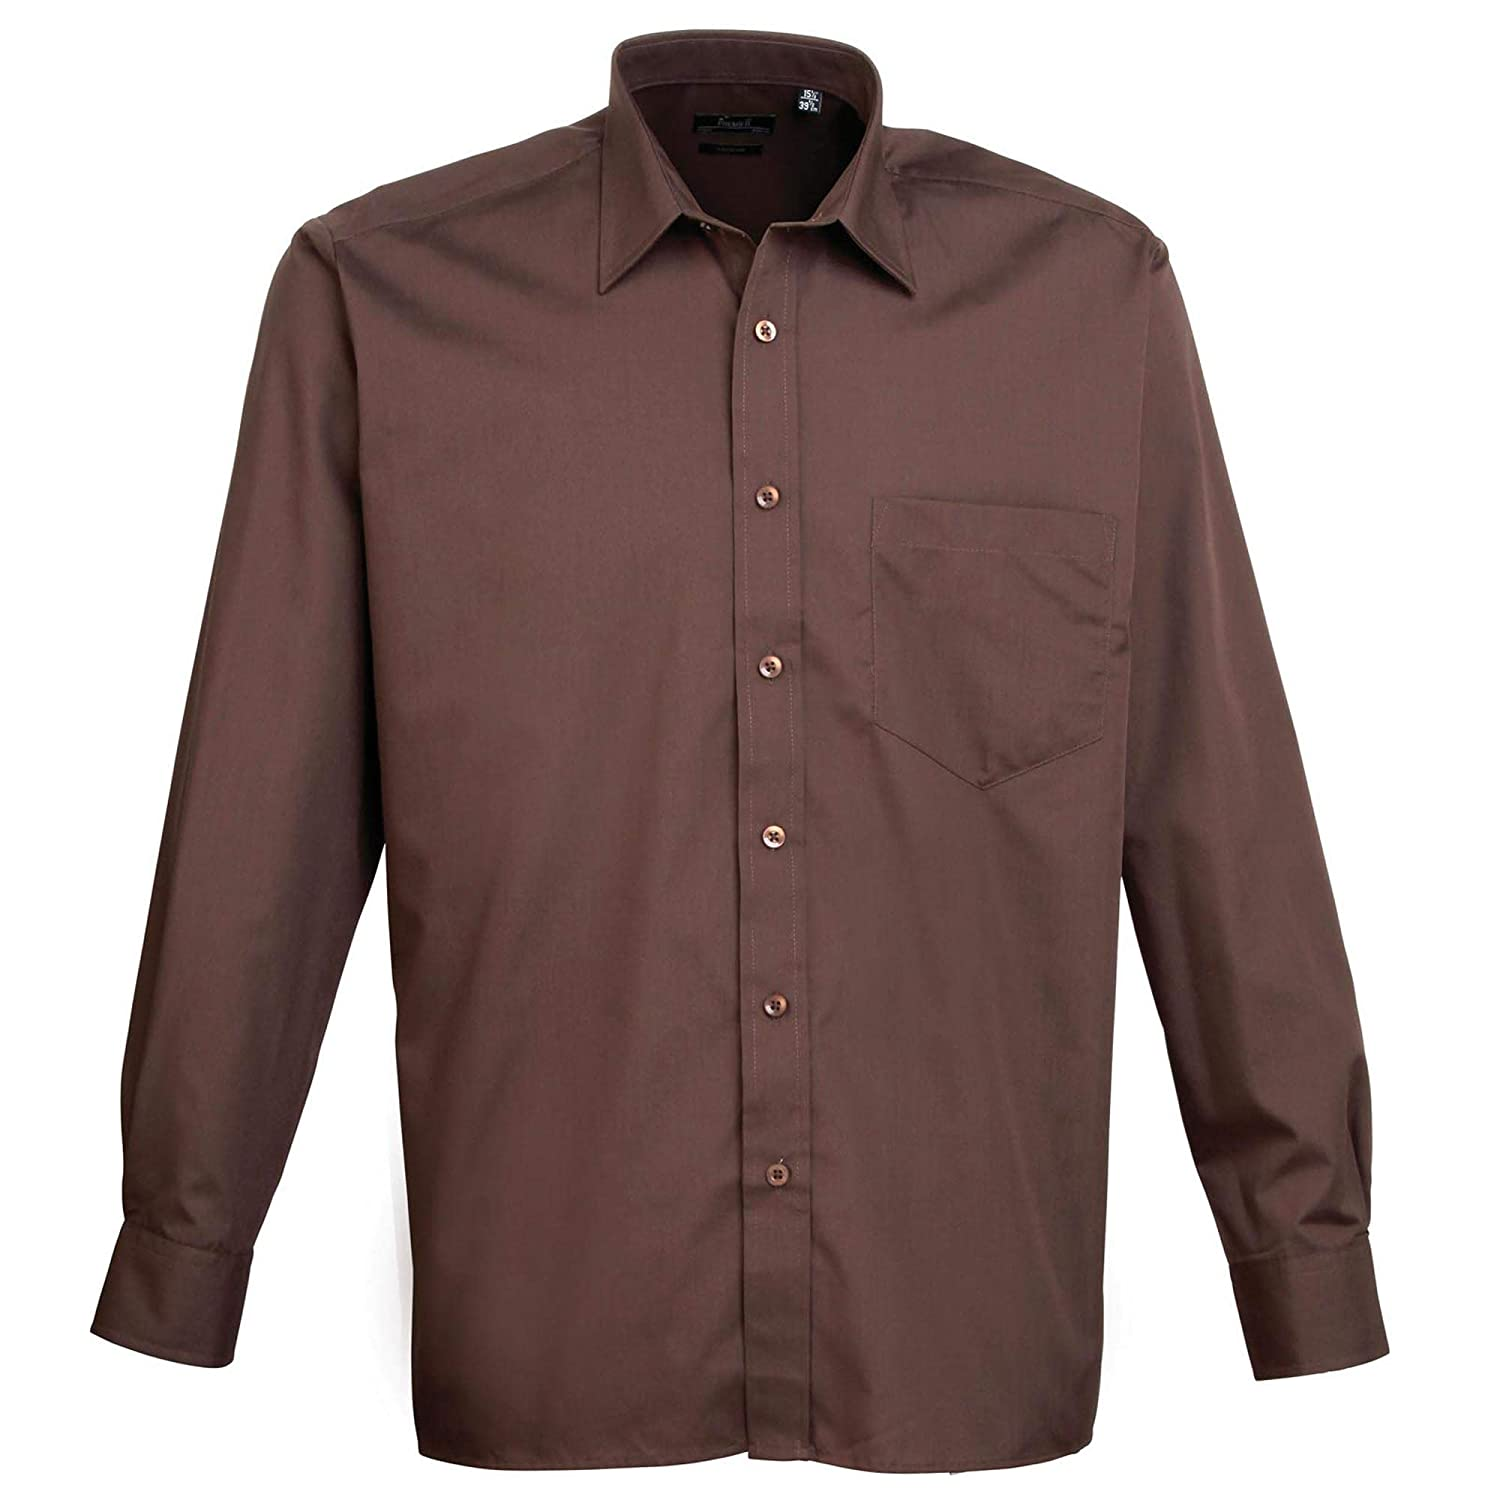 Premier PR200 Long Sleeve poplin Shirt Blank Plain